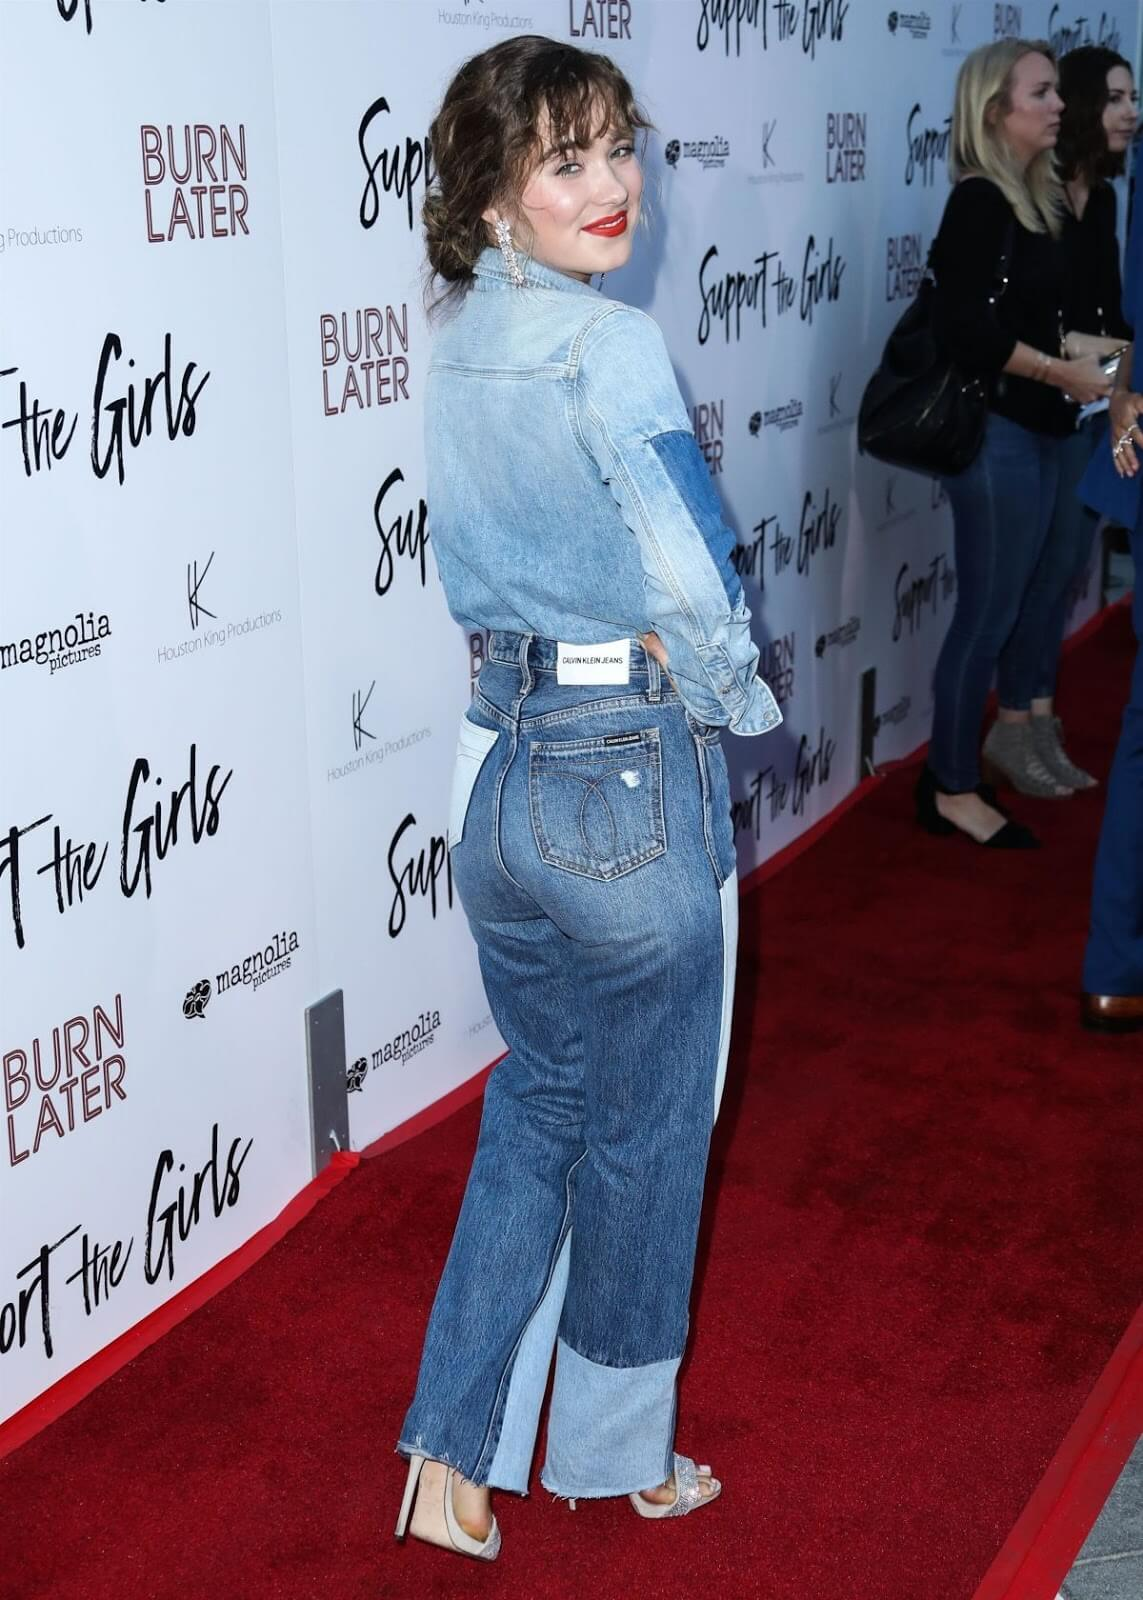 42 Hottest Haley Lu Richardson Big Butt Pictures Which Will Get